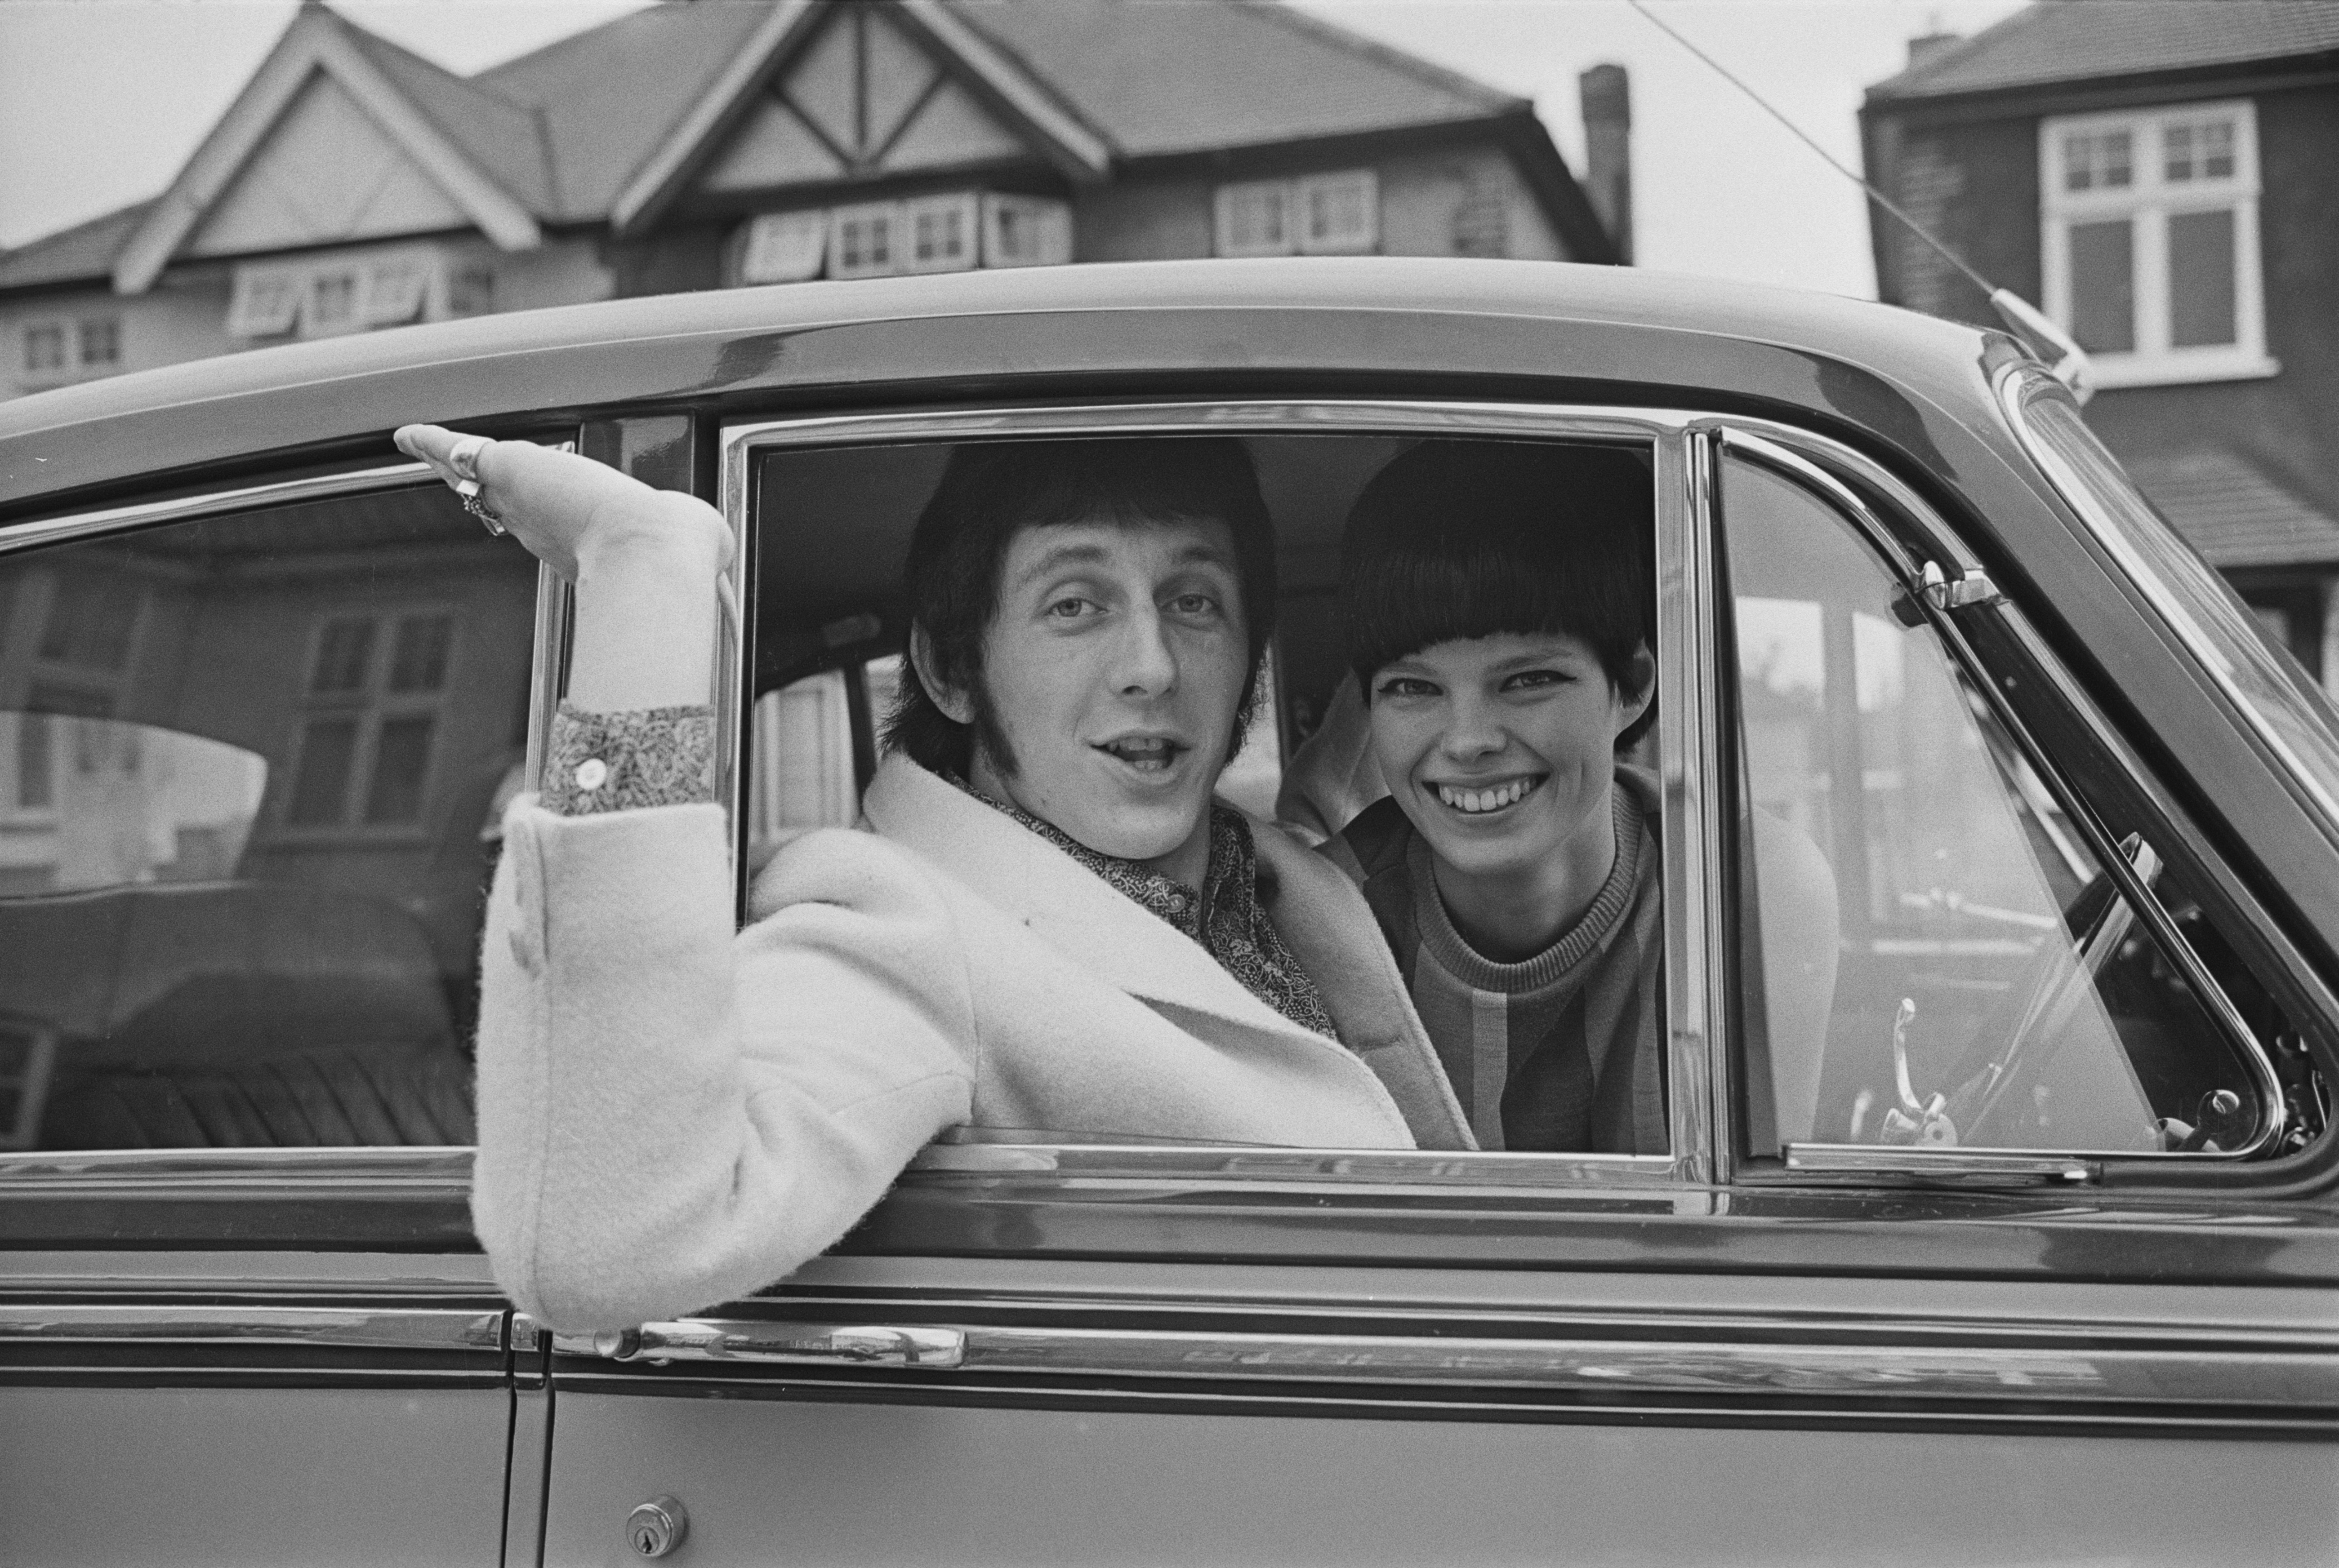 English bass guitarist for 'The Who' John Entwistle and Alison Wise, 17th March 1967. (Photo by Stan Meagher/Daily Express/Hulton Archive/Getty Images)